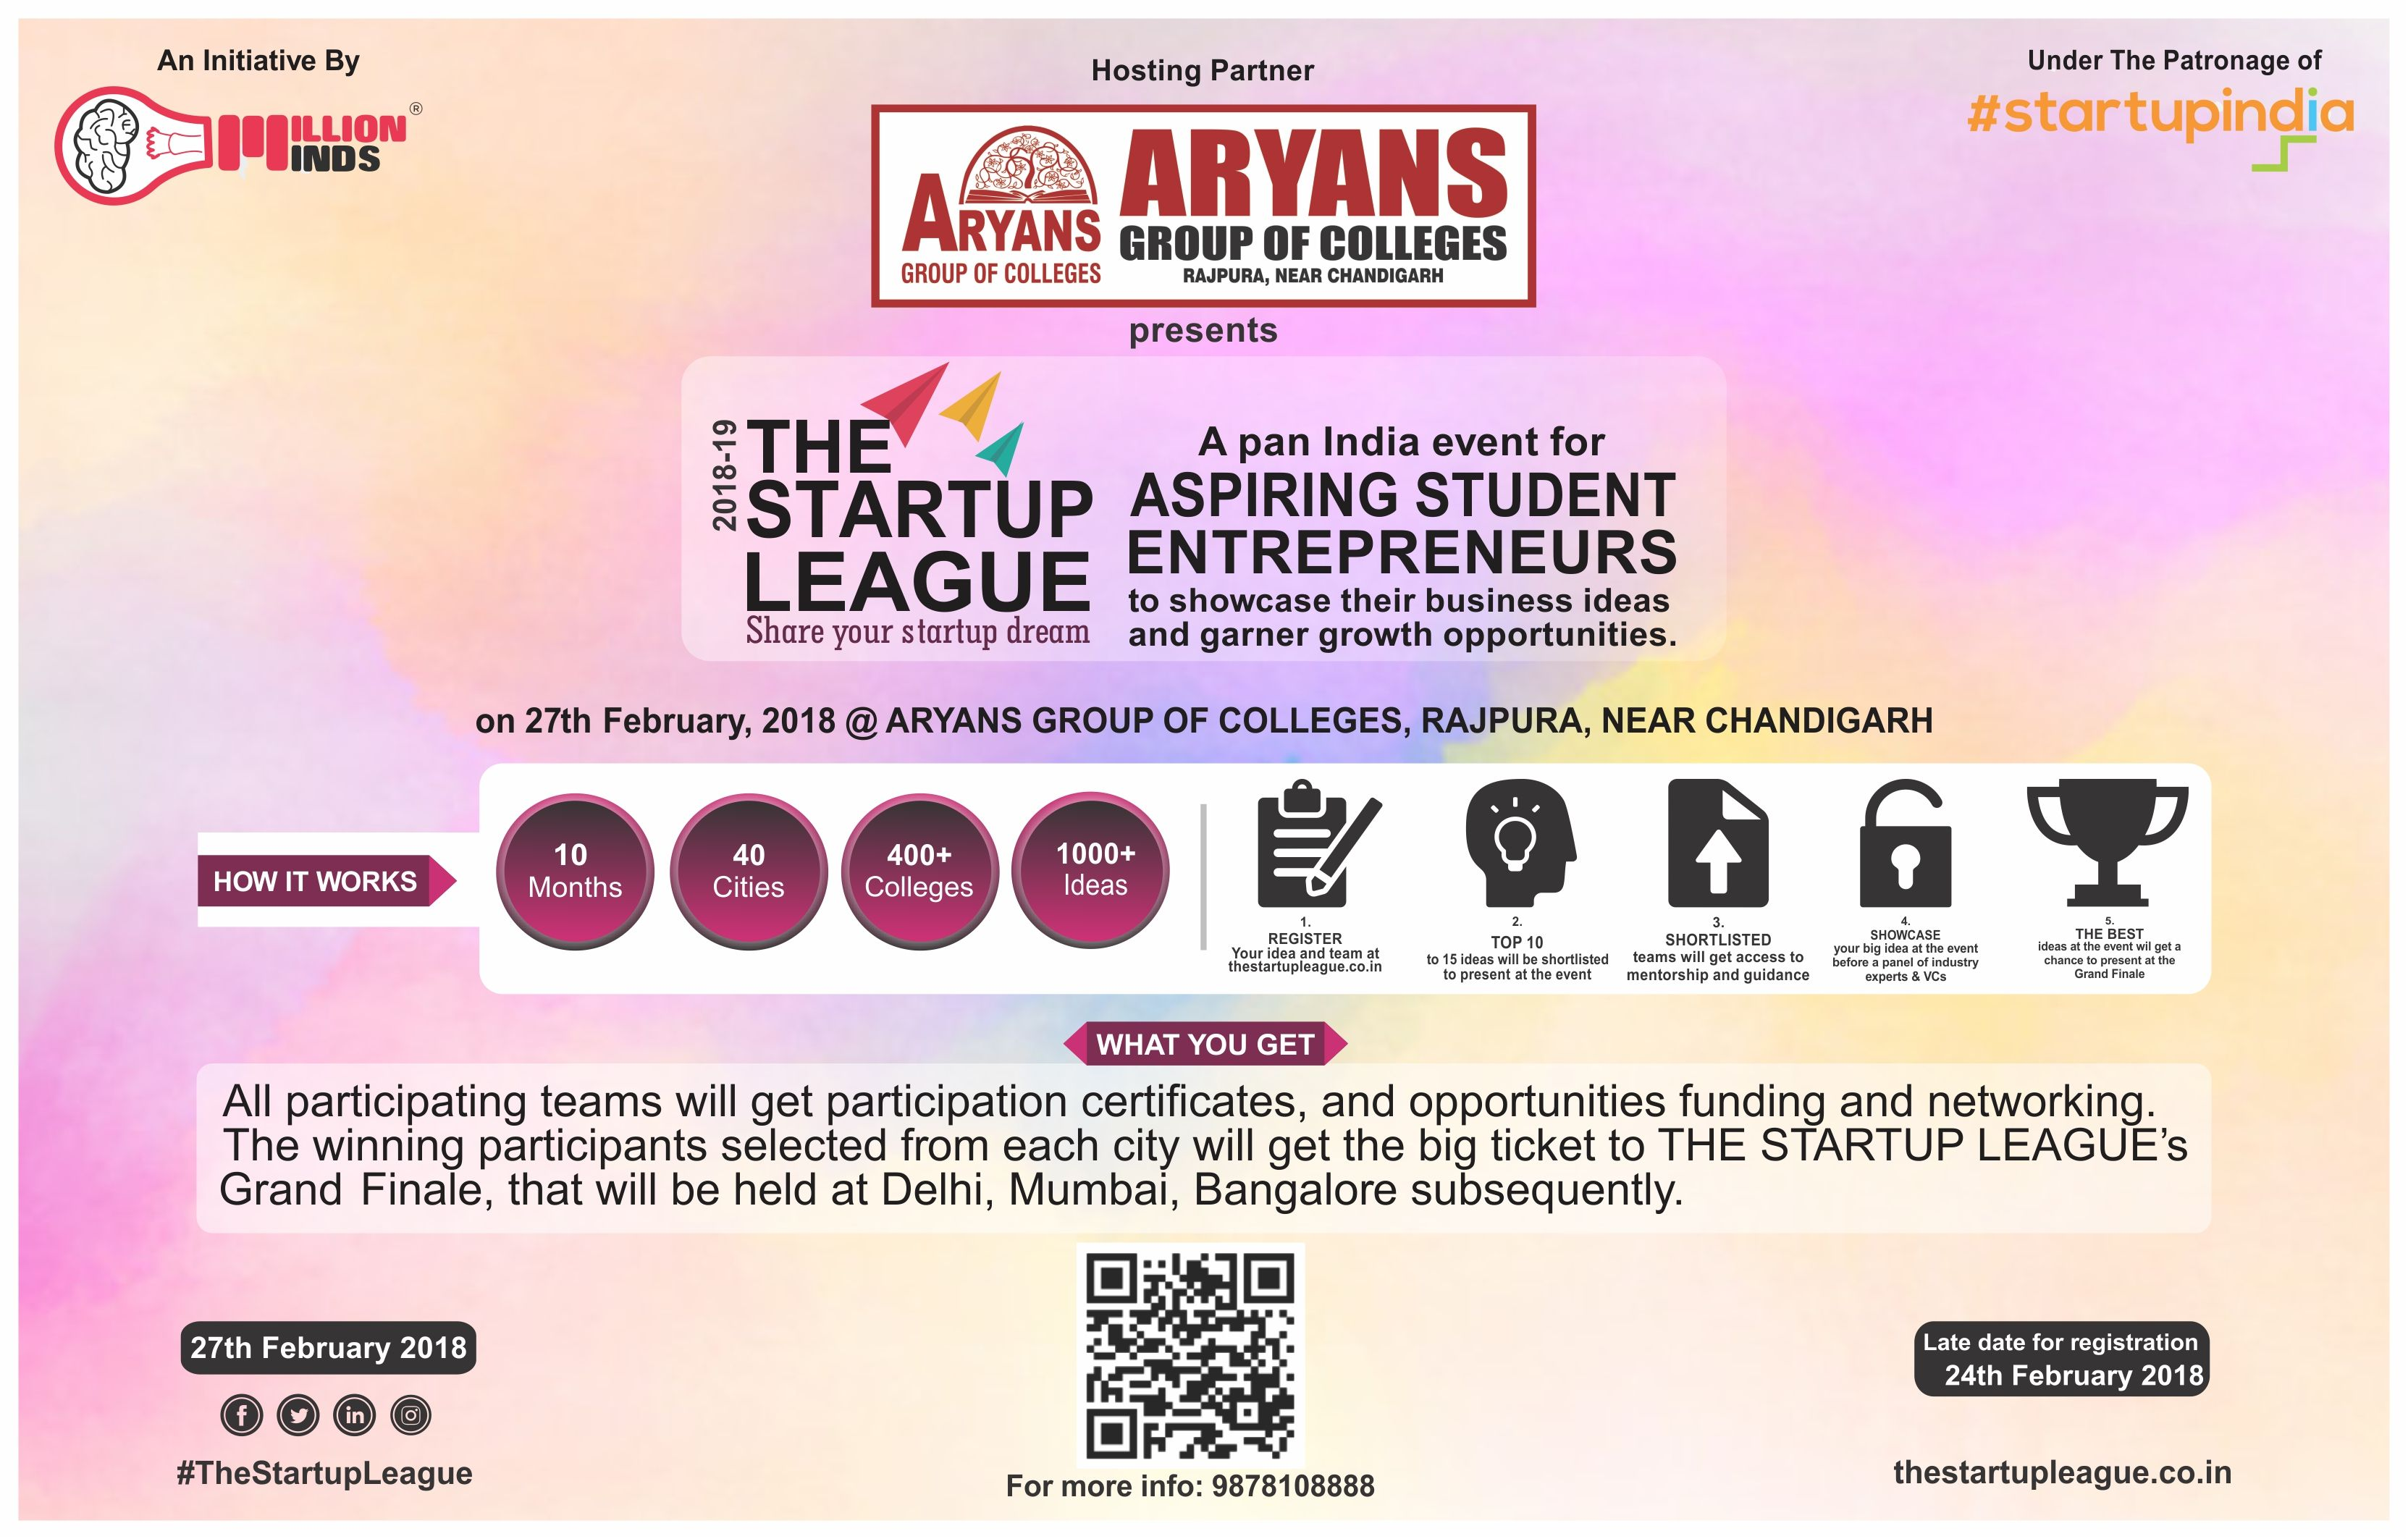 To aspire student Entrepreneurs to showcase their business ideas